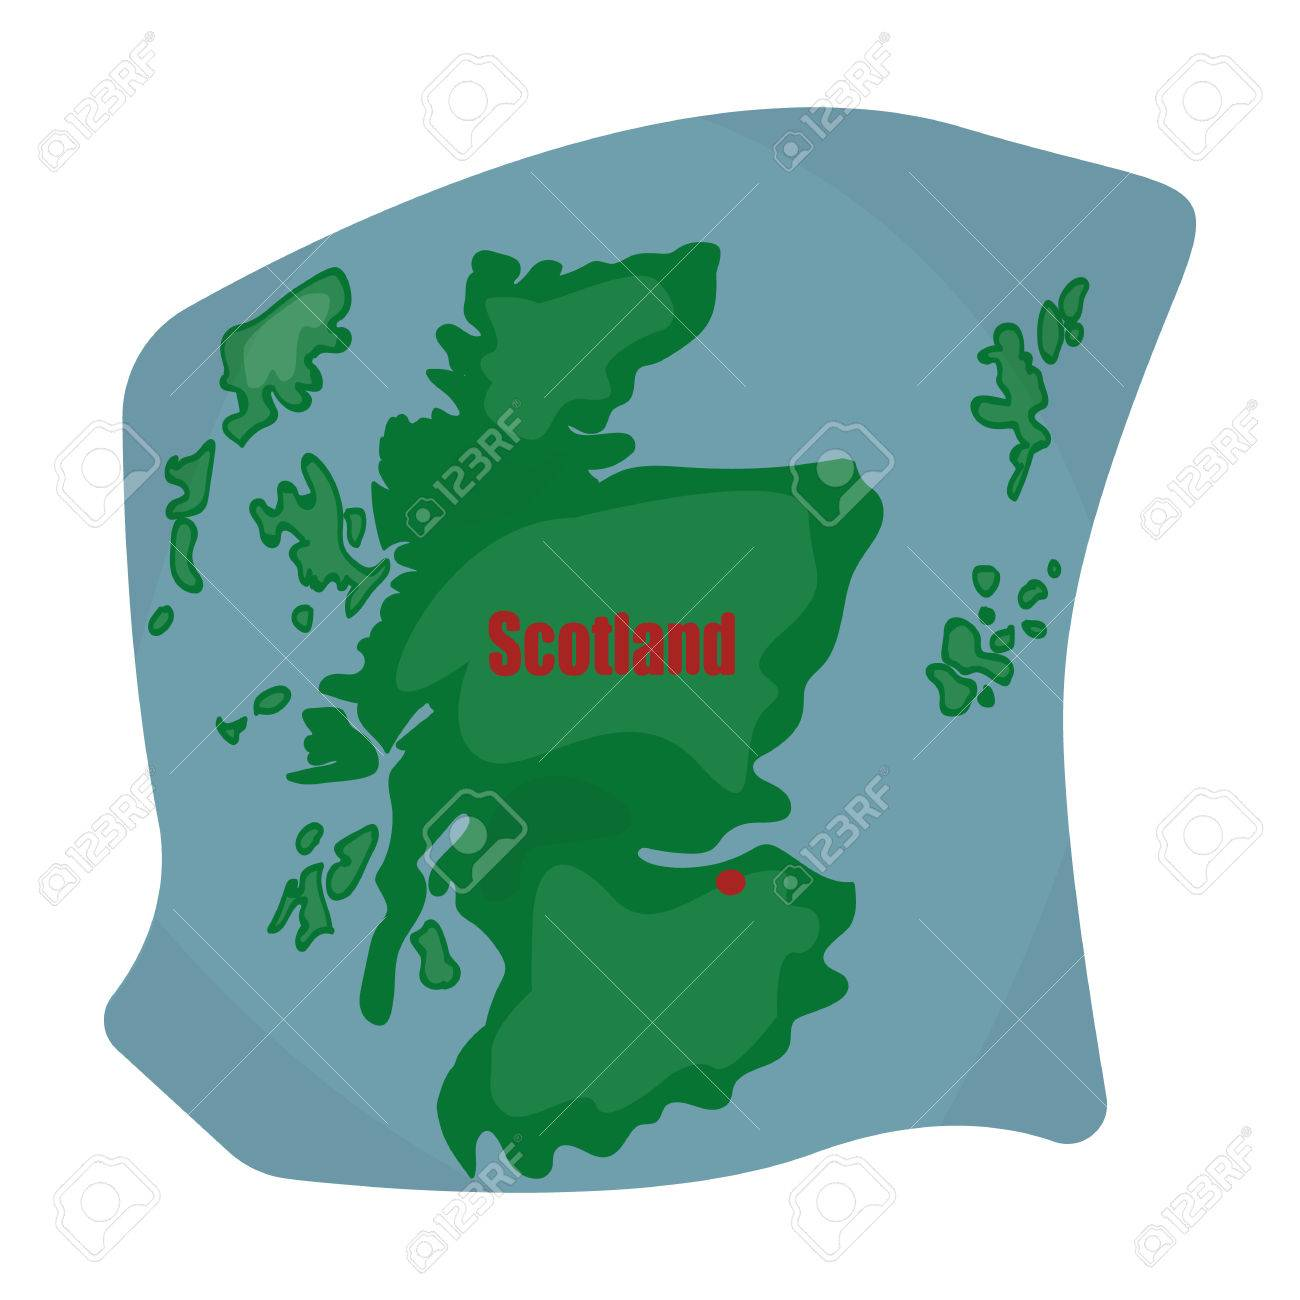 Scotland the mapotland is a country on the world mapotland scotland the mapotland is a country on the world mapotland single icon gumiabroncs Choice Image